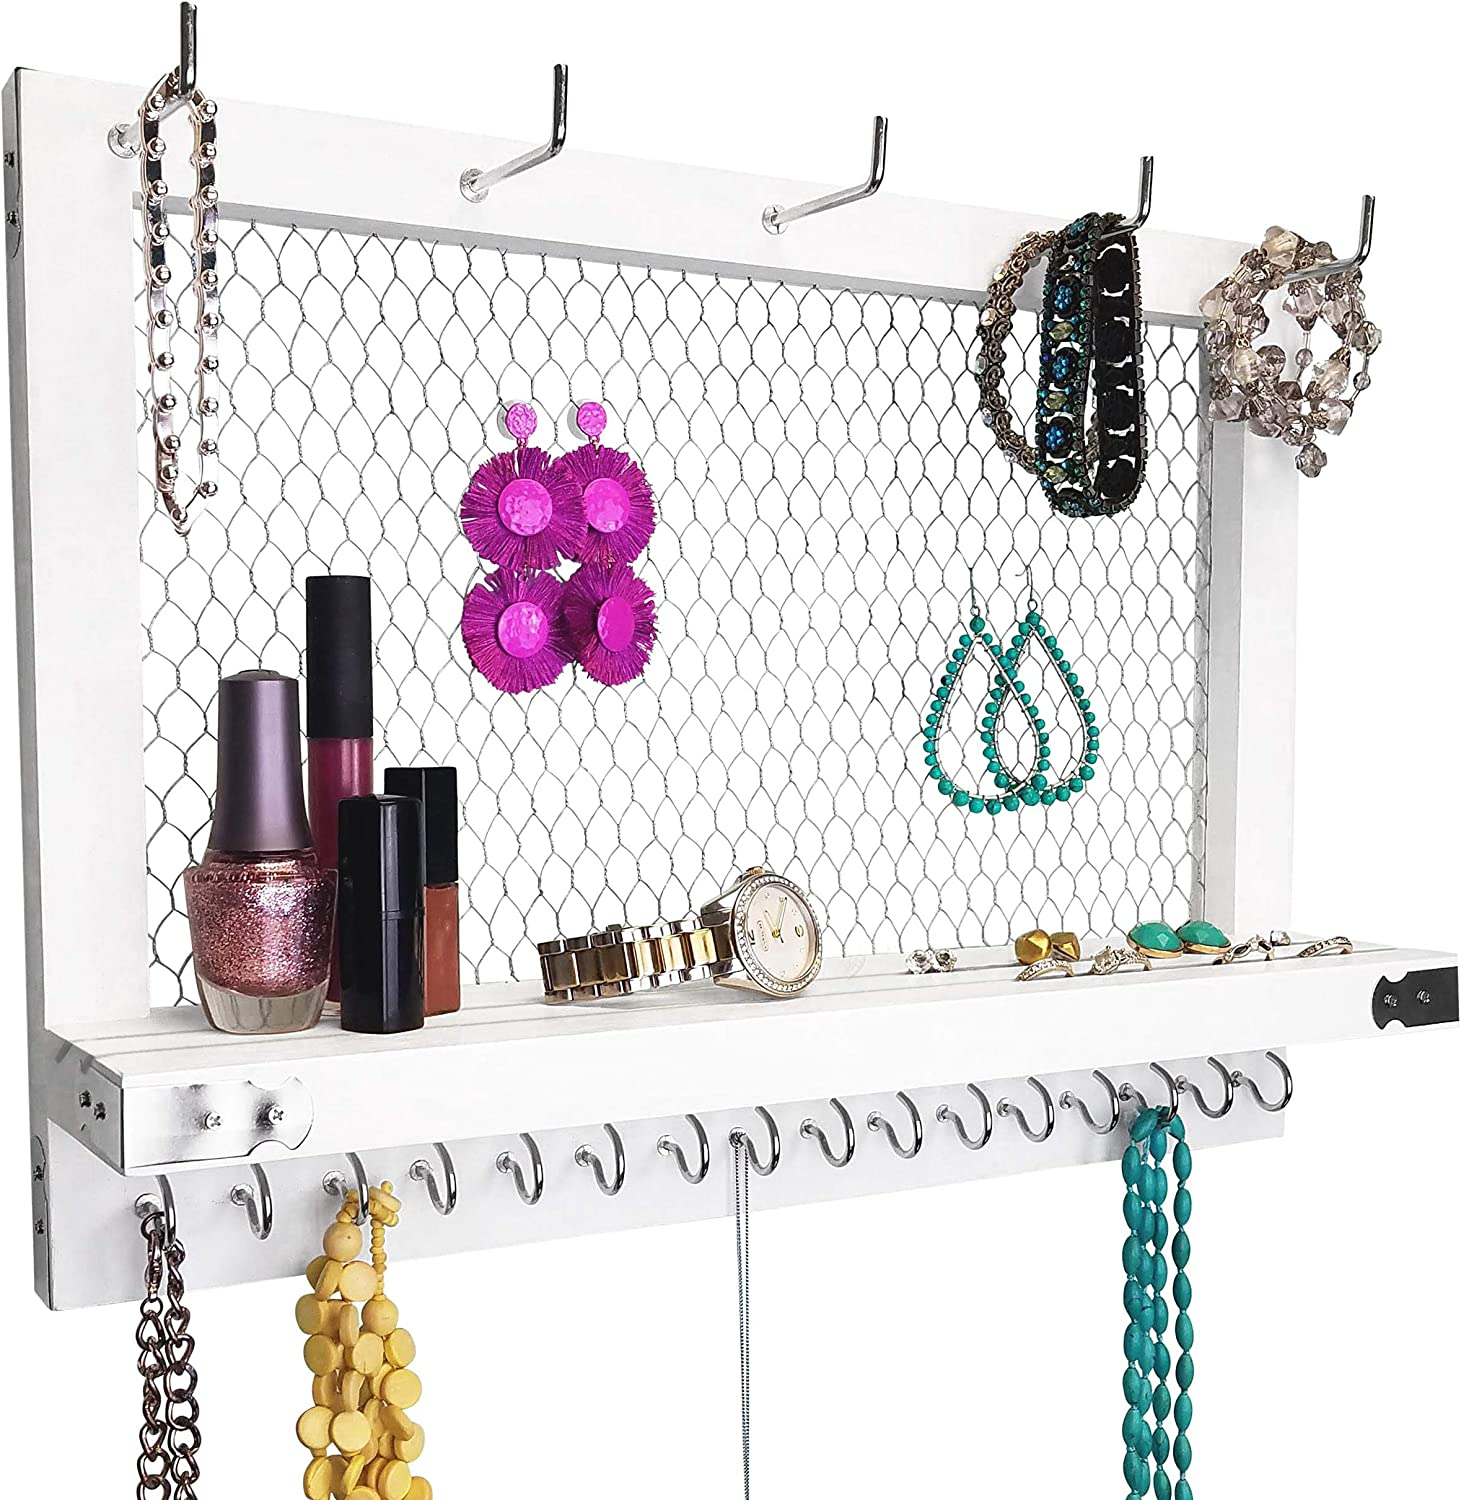 Outshine Large Farmhouse Wall Jewelry Organizer and Wall Decor (White/Silver) | Vintage Wall Organizer For Earrings, Necklaces, Bracelets, Hair Accessories | Diamond Shape Chicken Wire Earring Holder | Perfect Gift For Women, Wife, Mom, Girlfriend